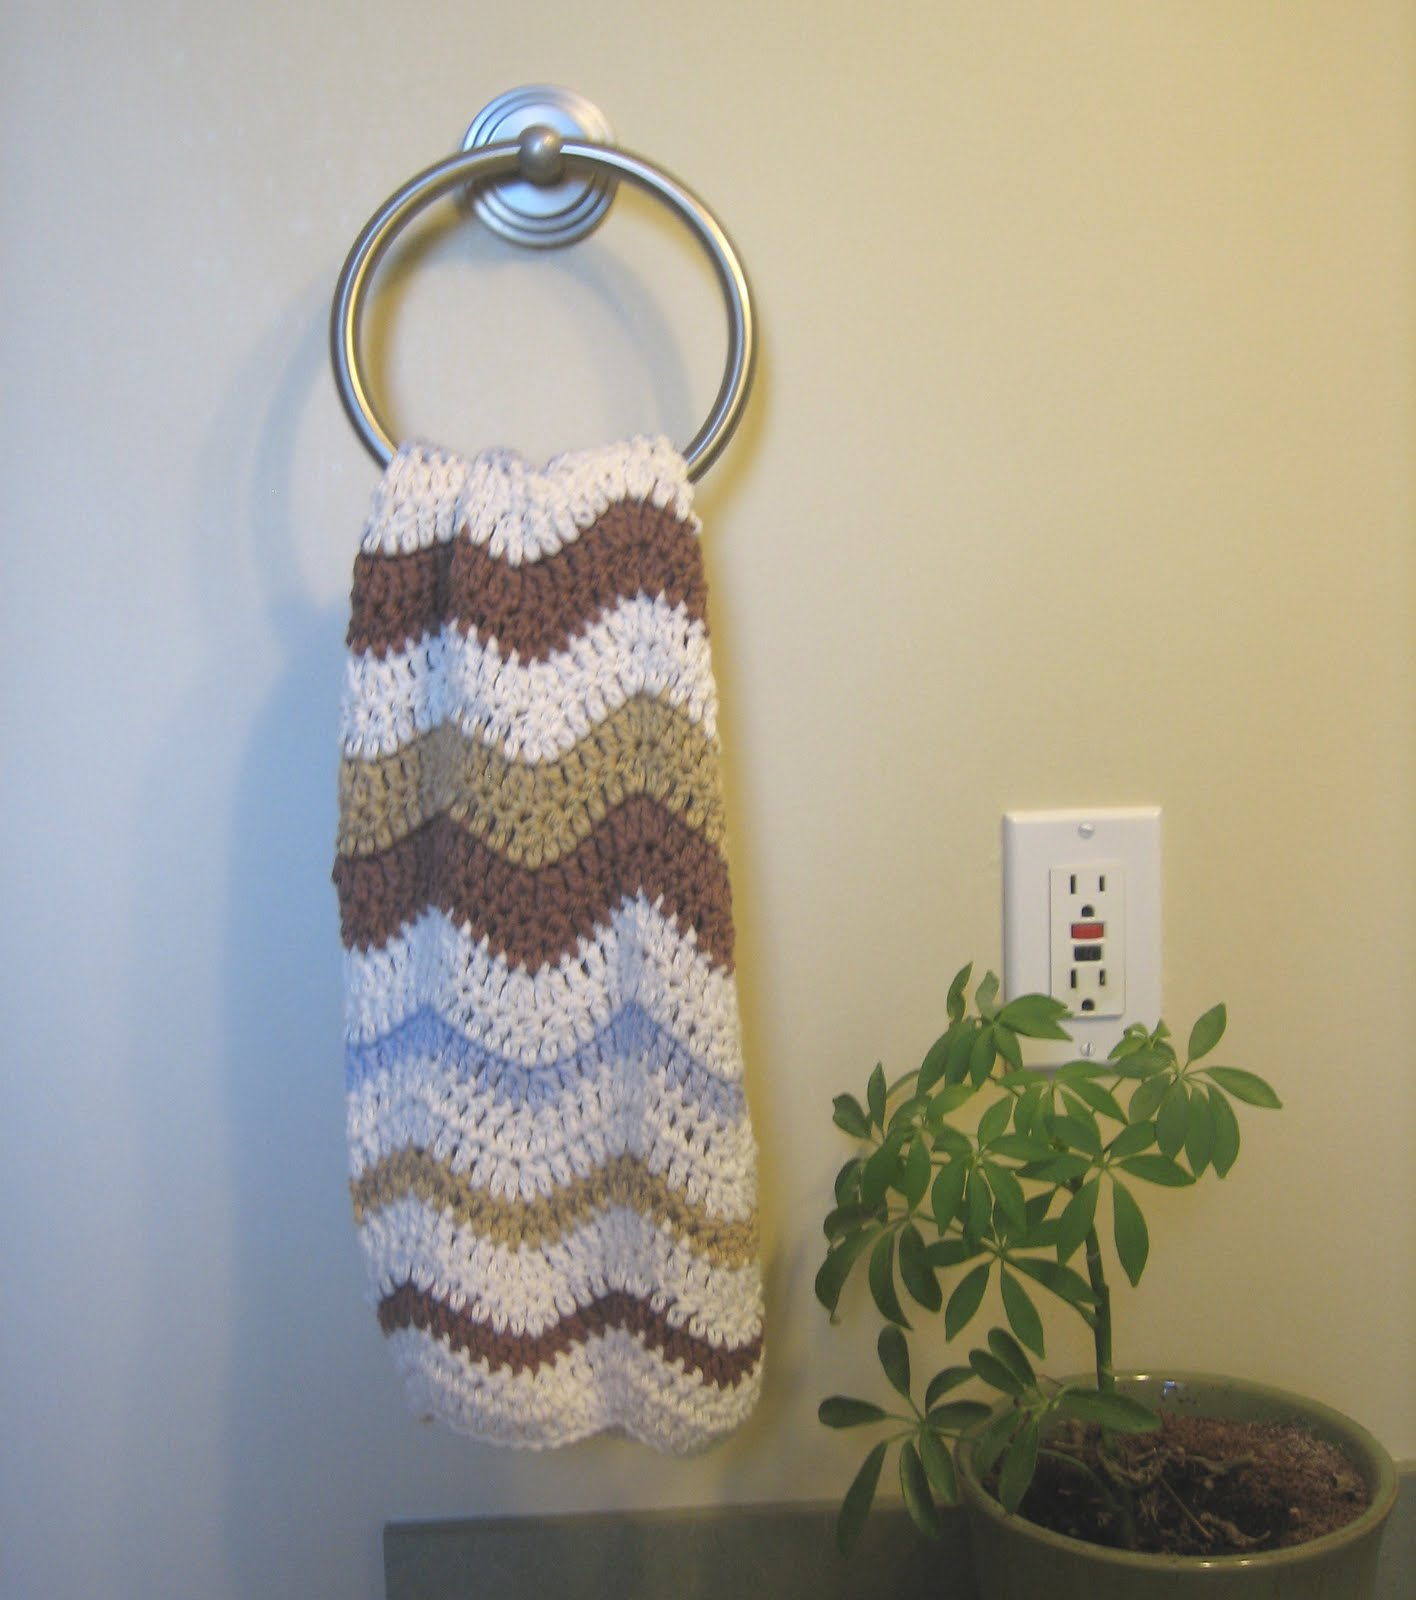 Hand Crochet Patterns : CROCHET N PLAY DESIGNS: Free Crochet Pattern: Lazy Wave Hand Towel